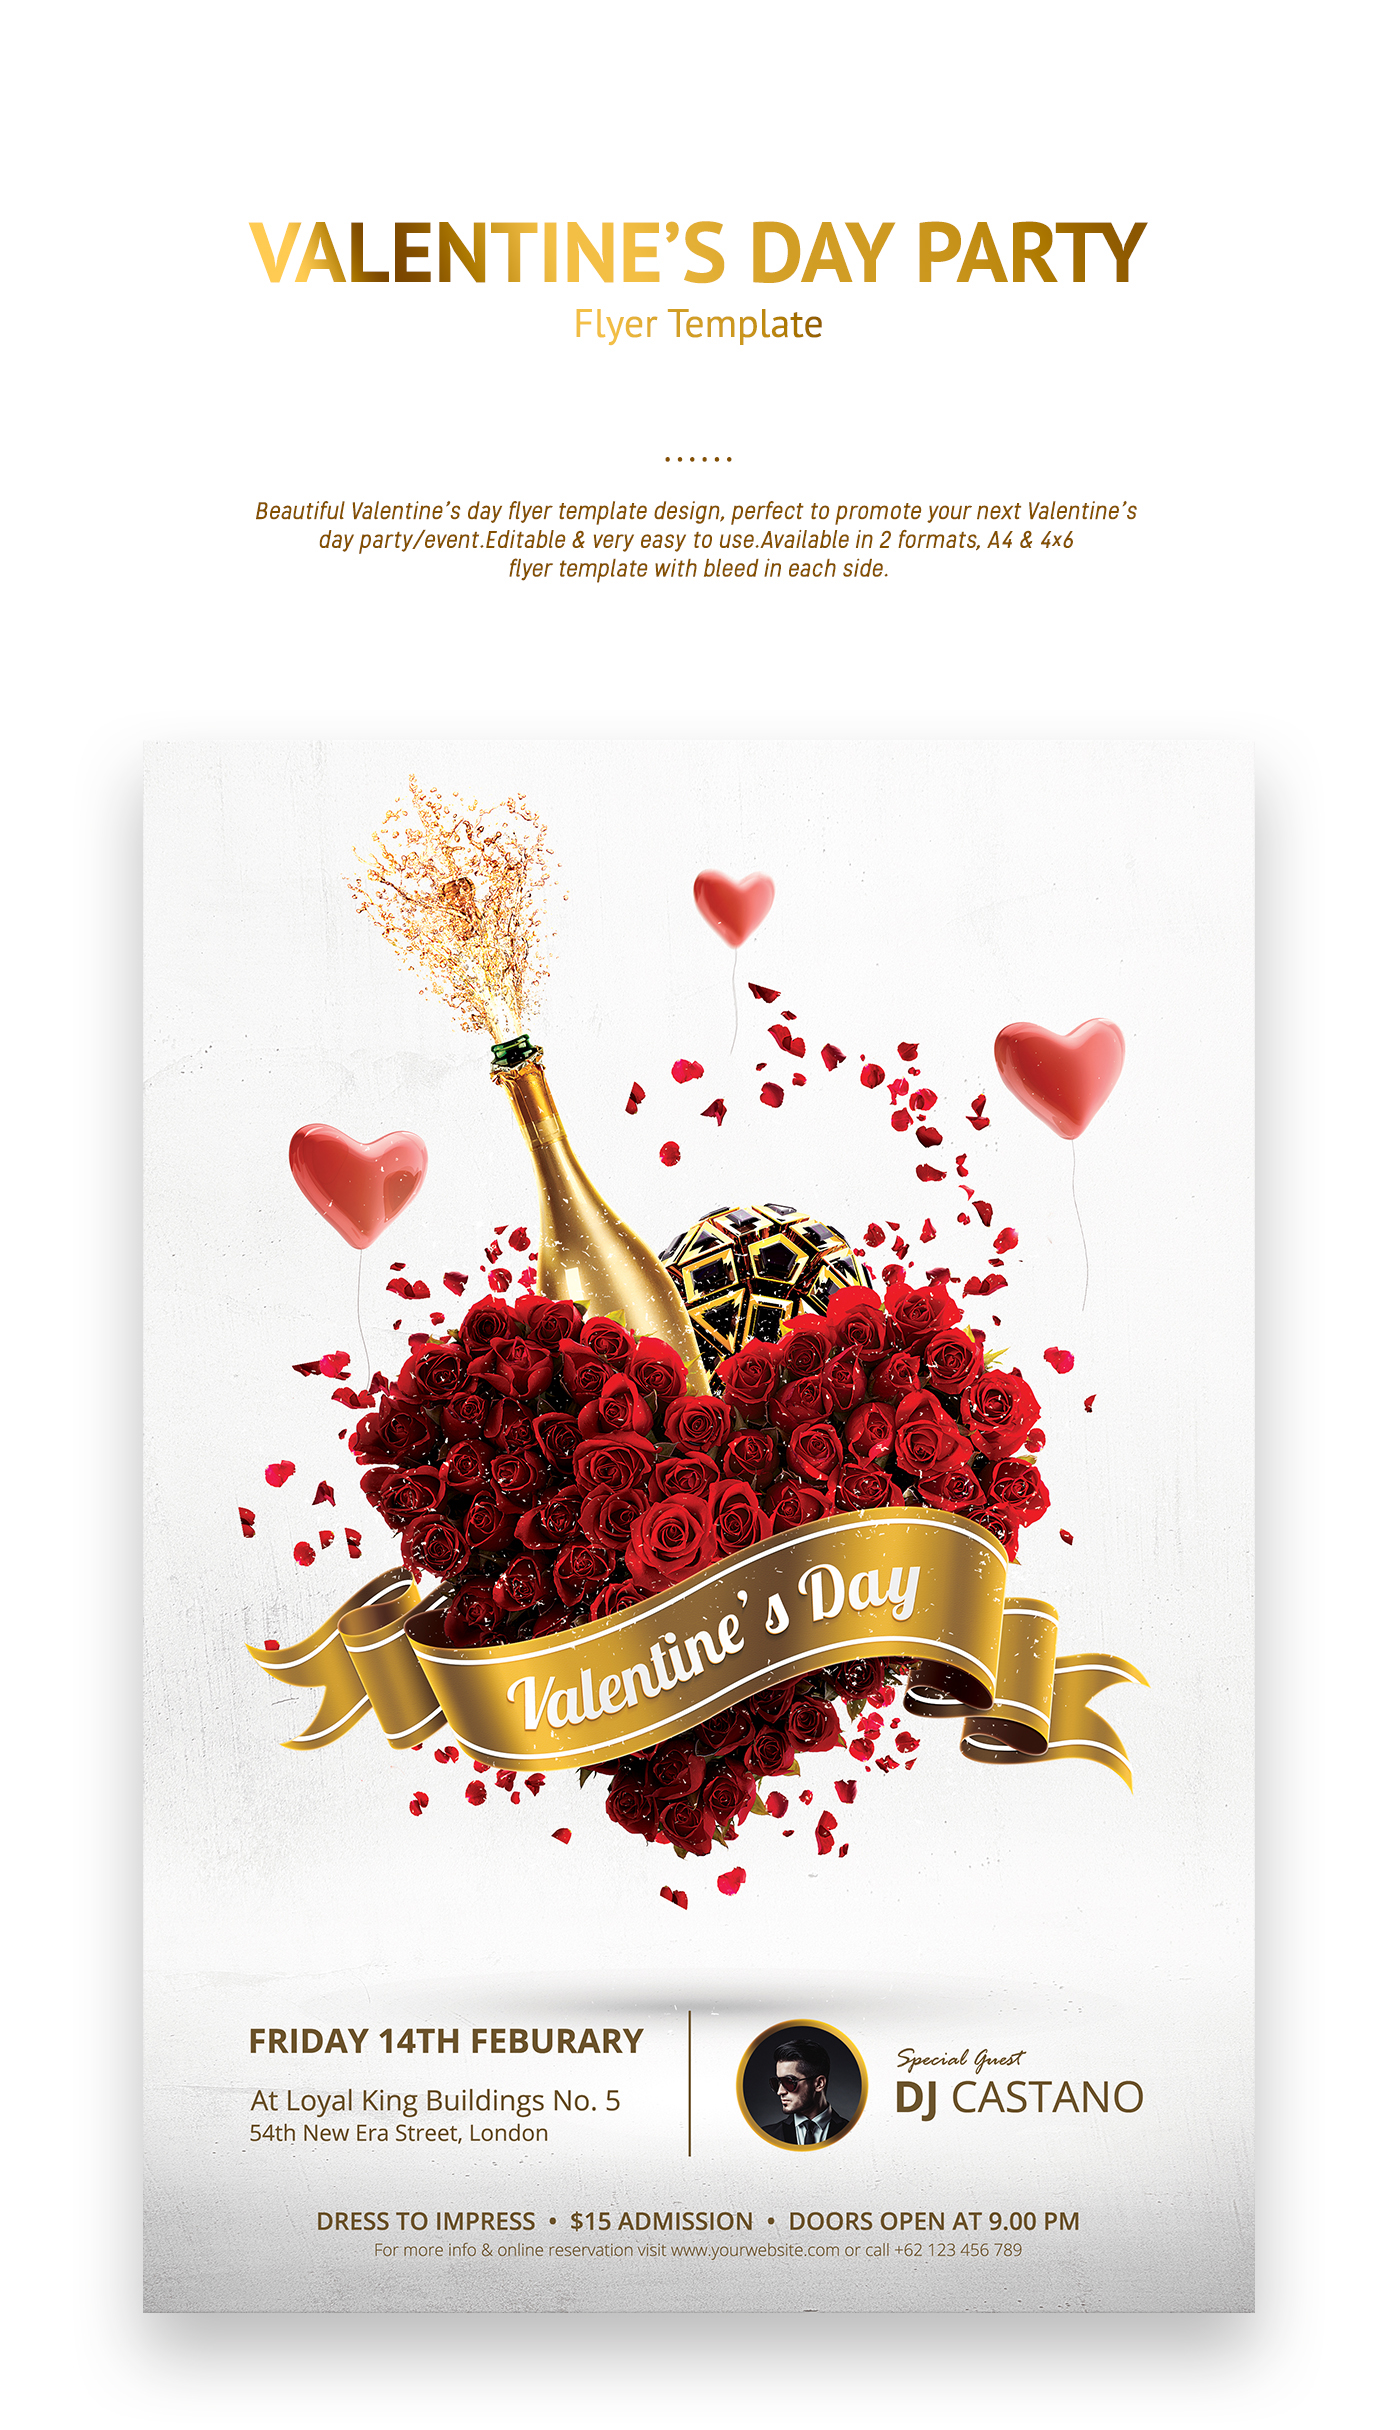 Valentines Day Party Flyer Template On Behance